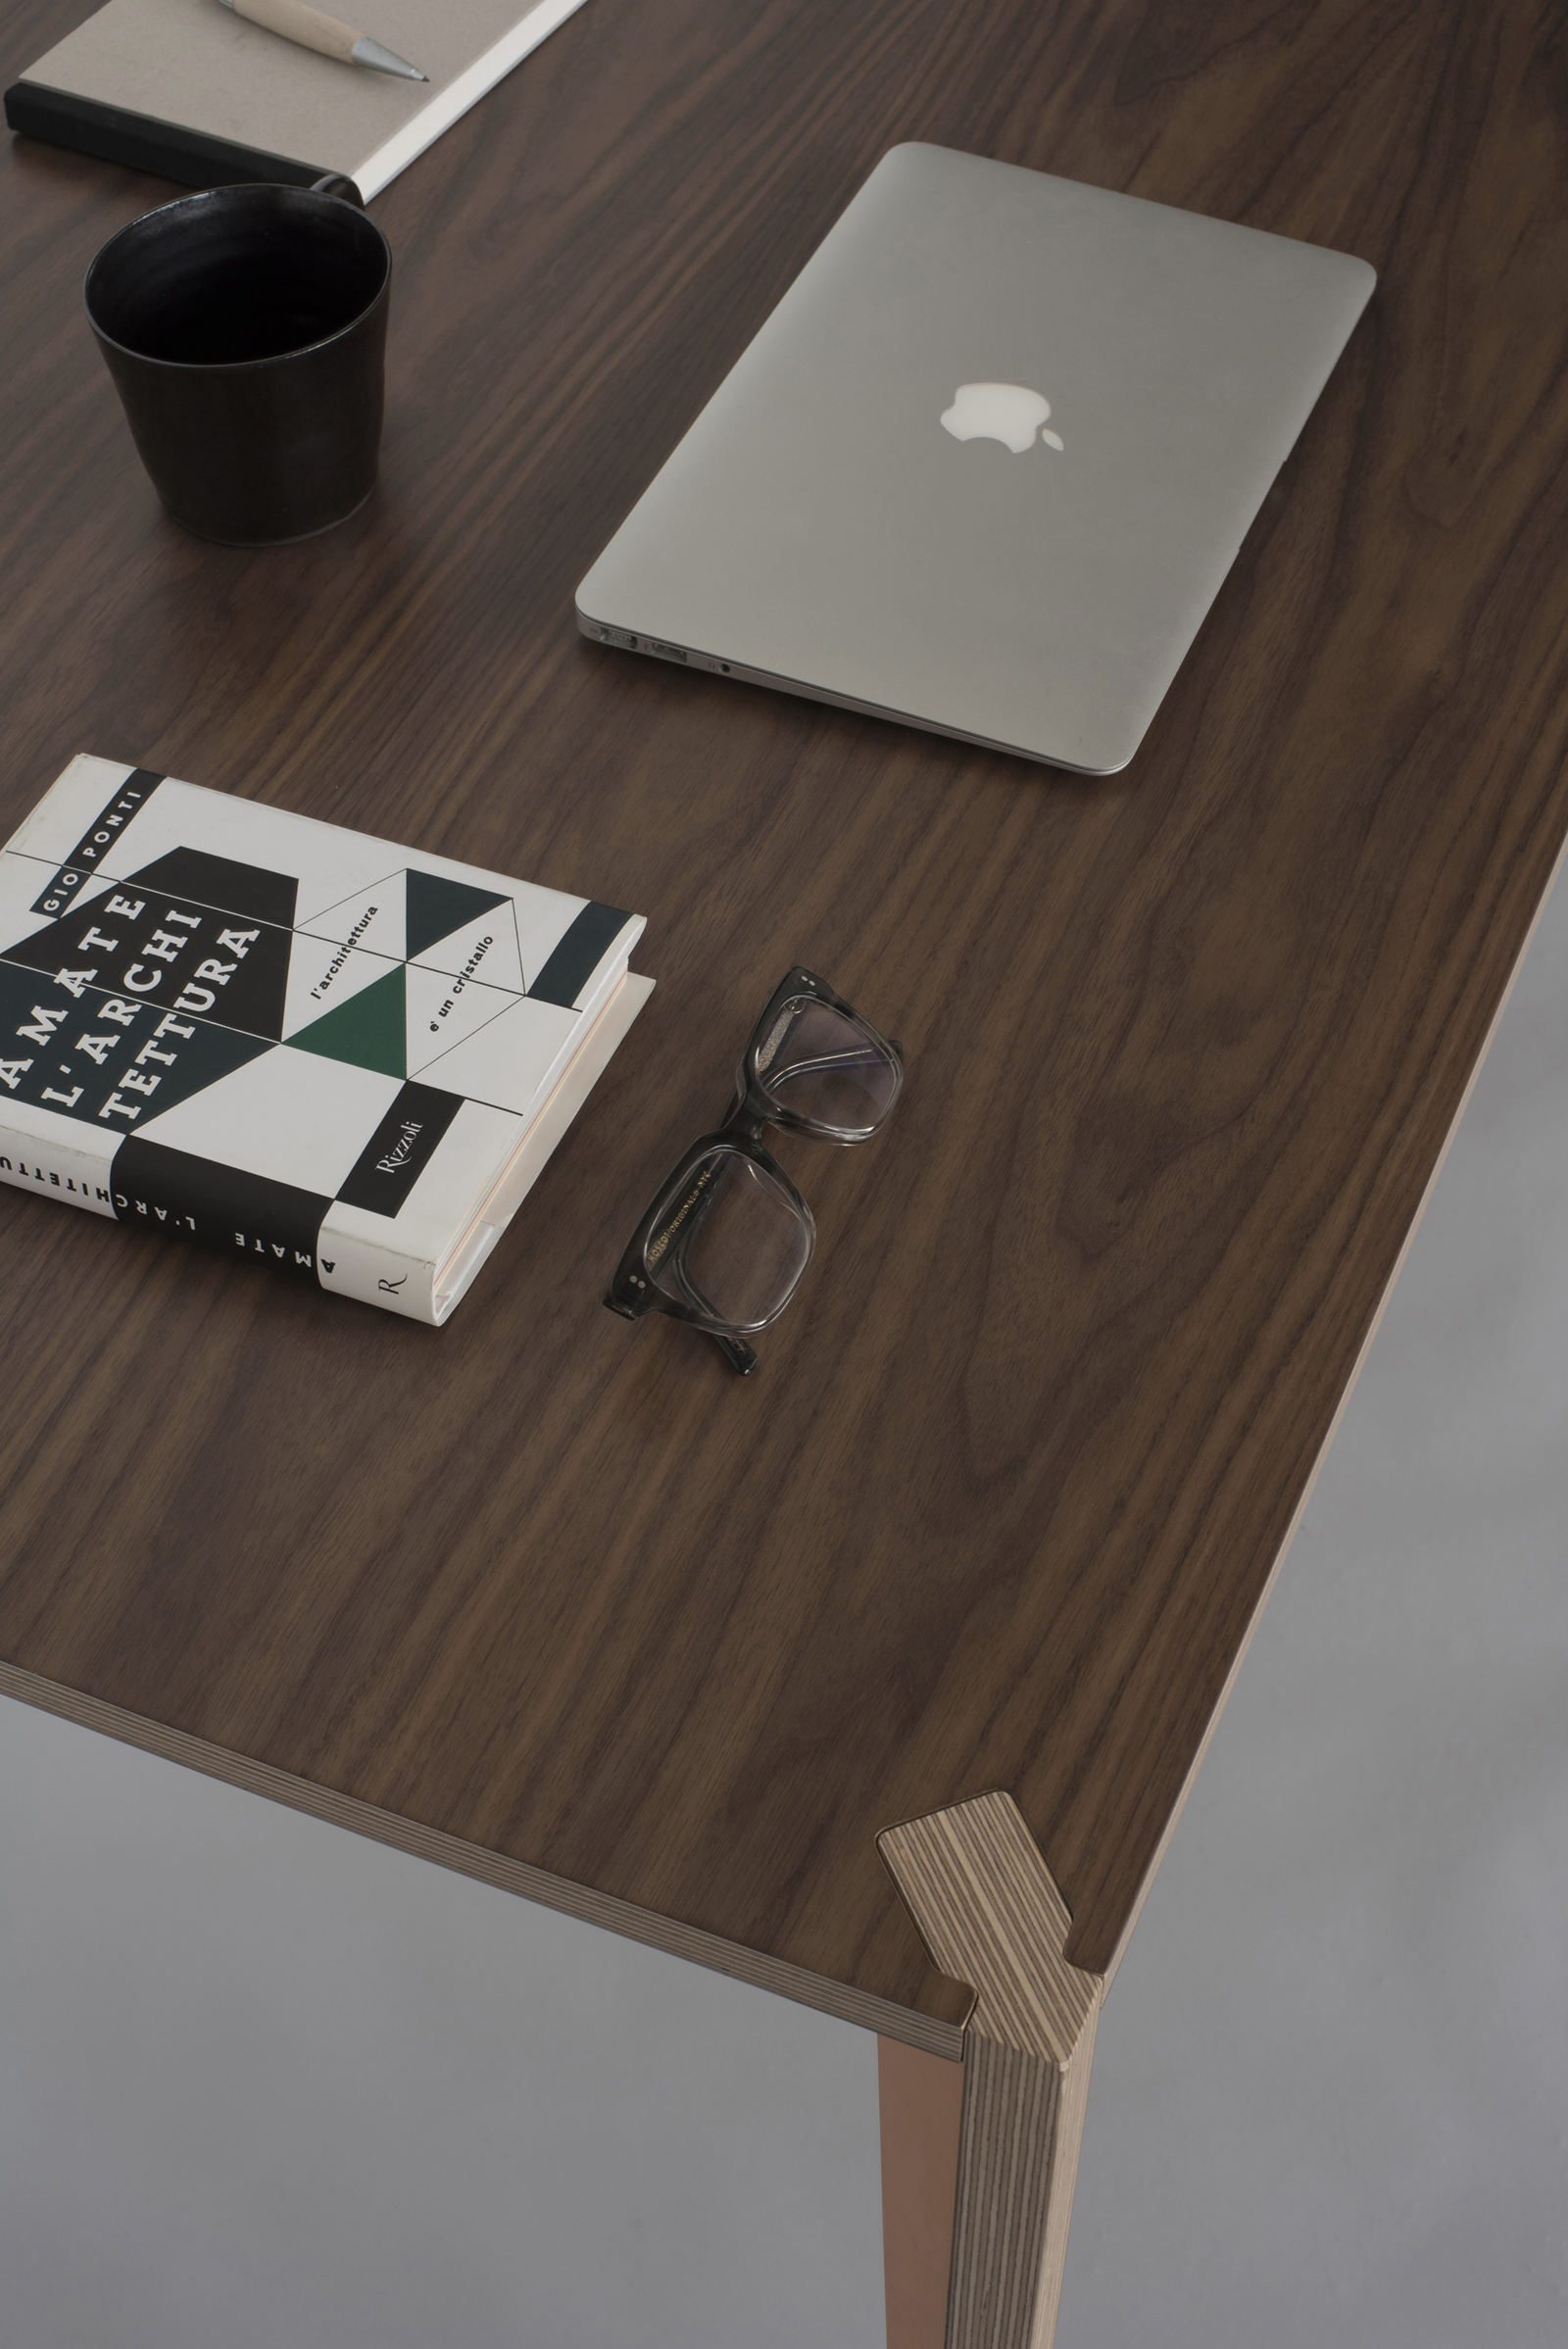 Walnut top and contrasting joiner in our MiMi table.